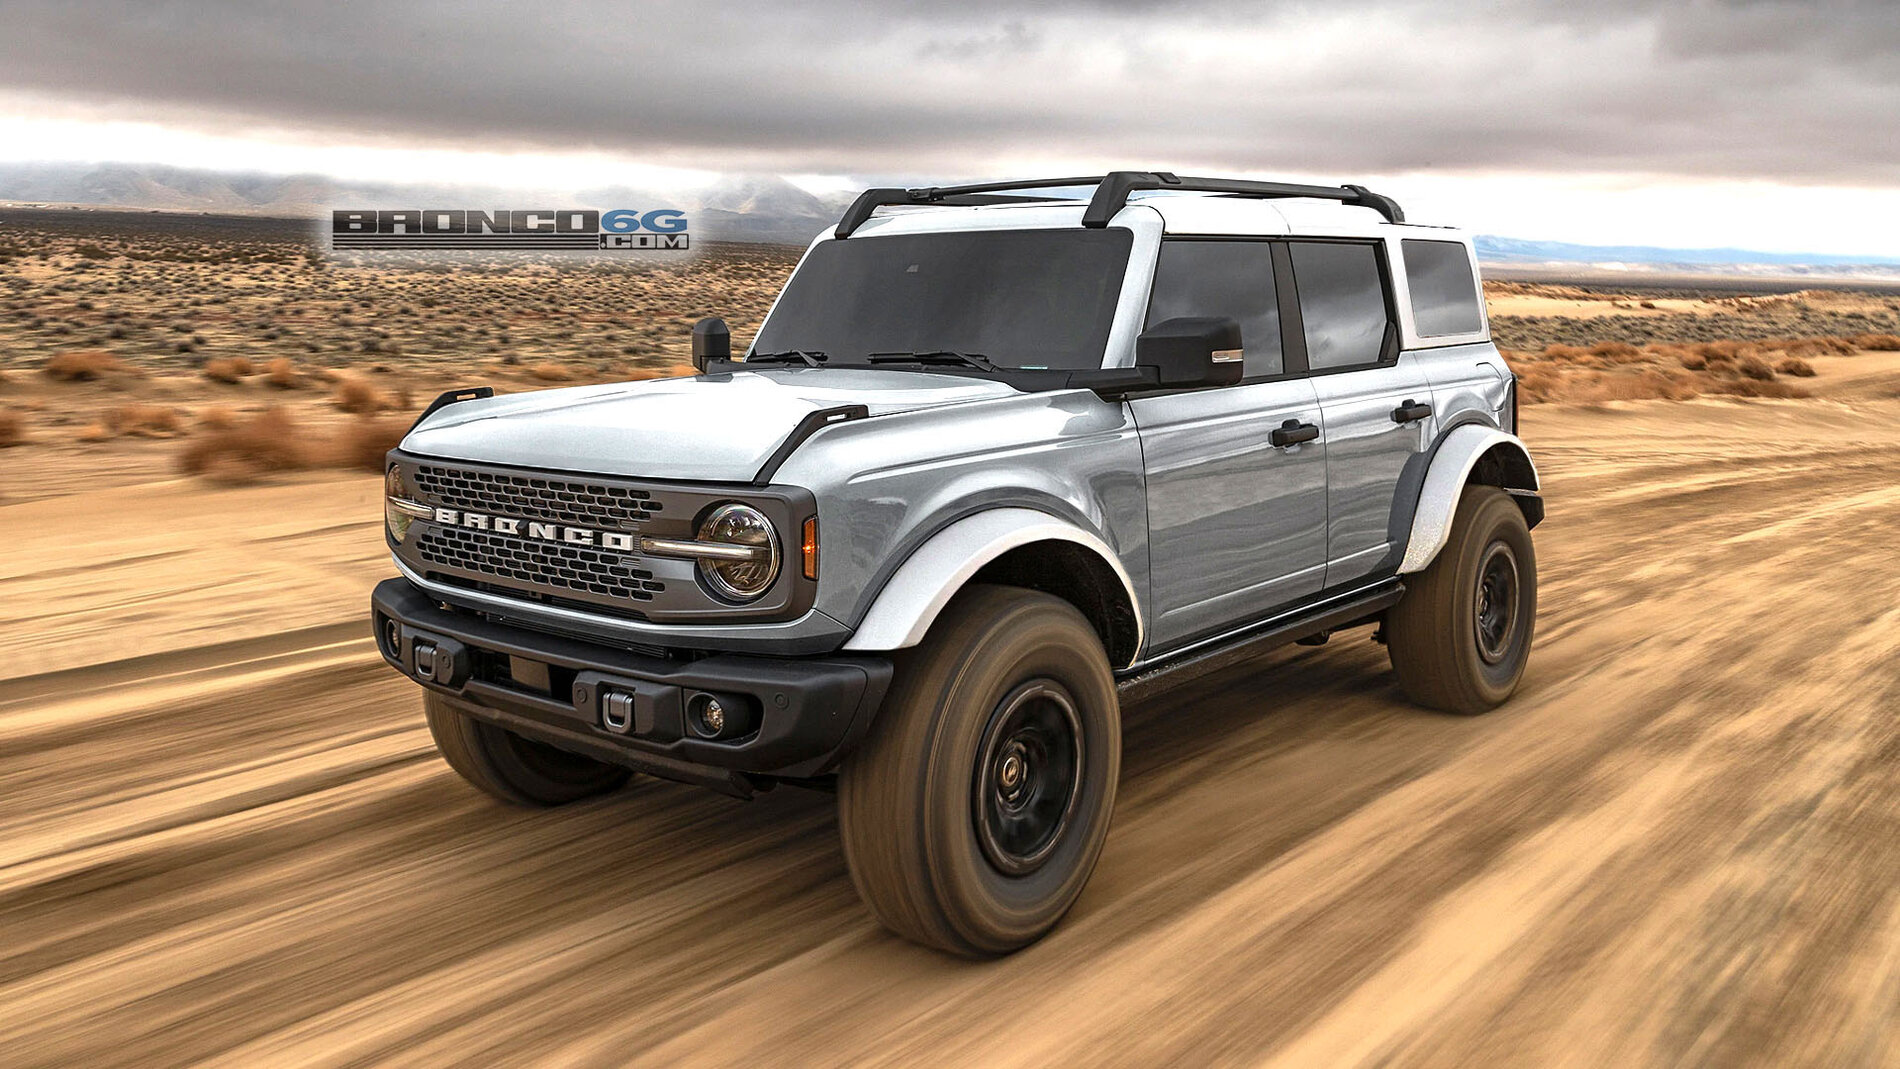 2021 Ford Bronco Sasquatch Iconic-Silver-white-roof-fendersBronco6G.com.jpg